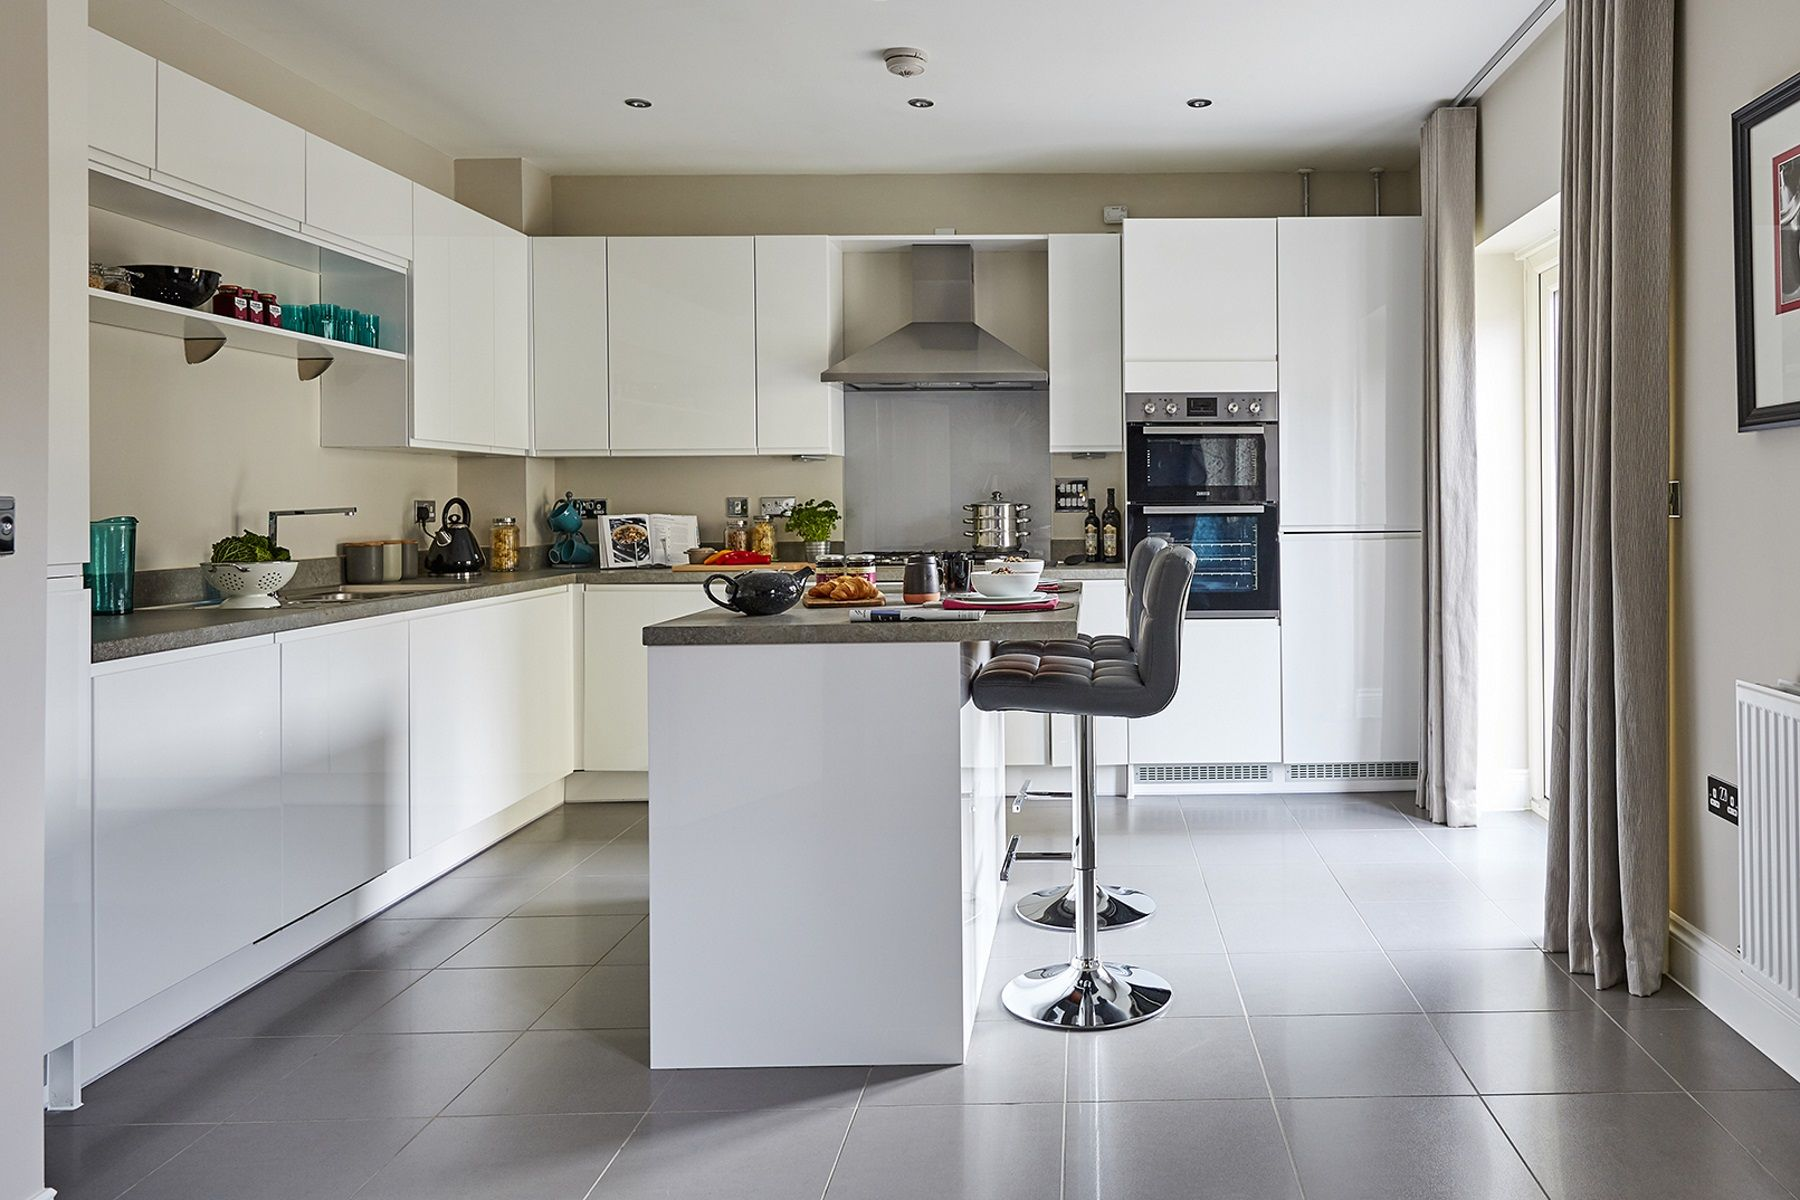 TW Exeter - Sherford - Redwood Show home kitchen 2